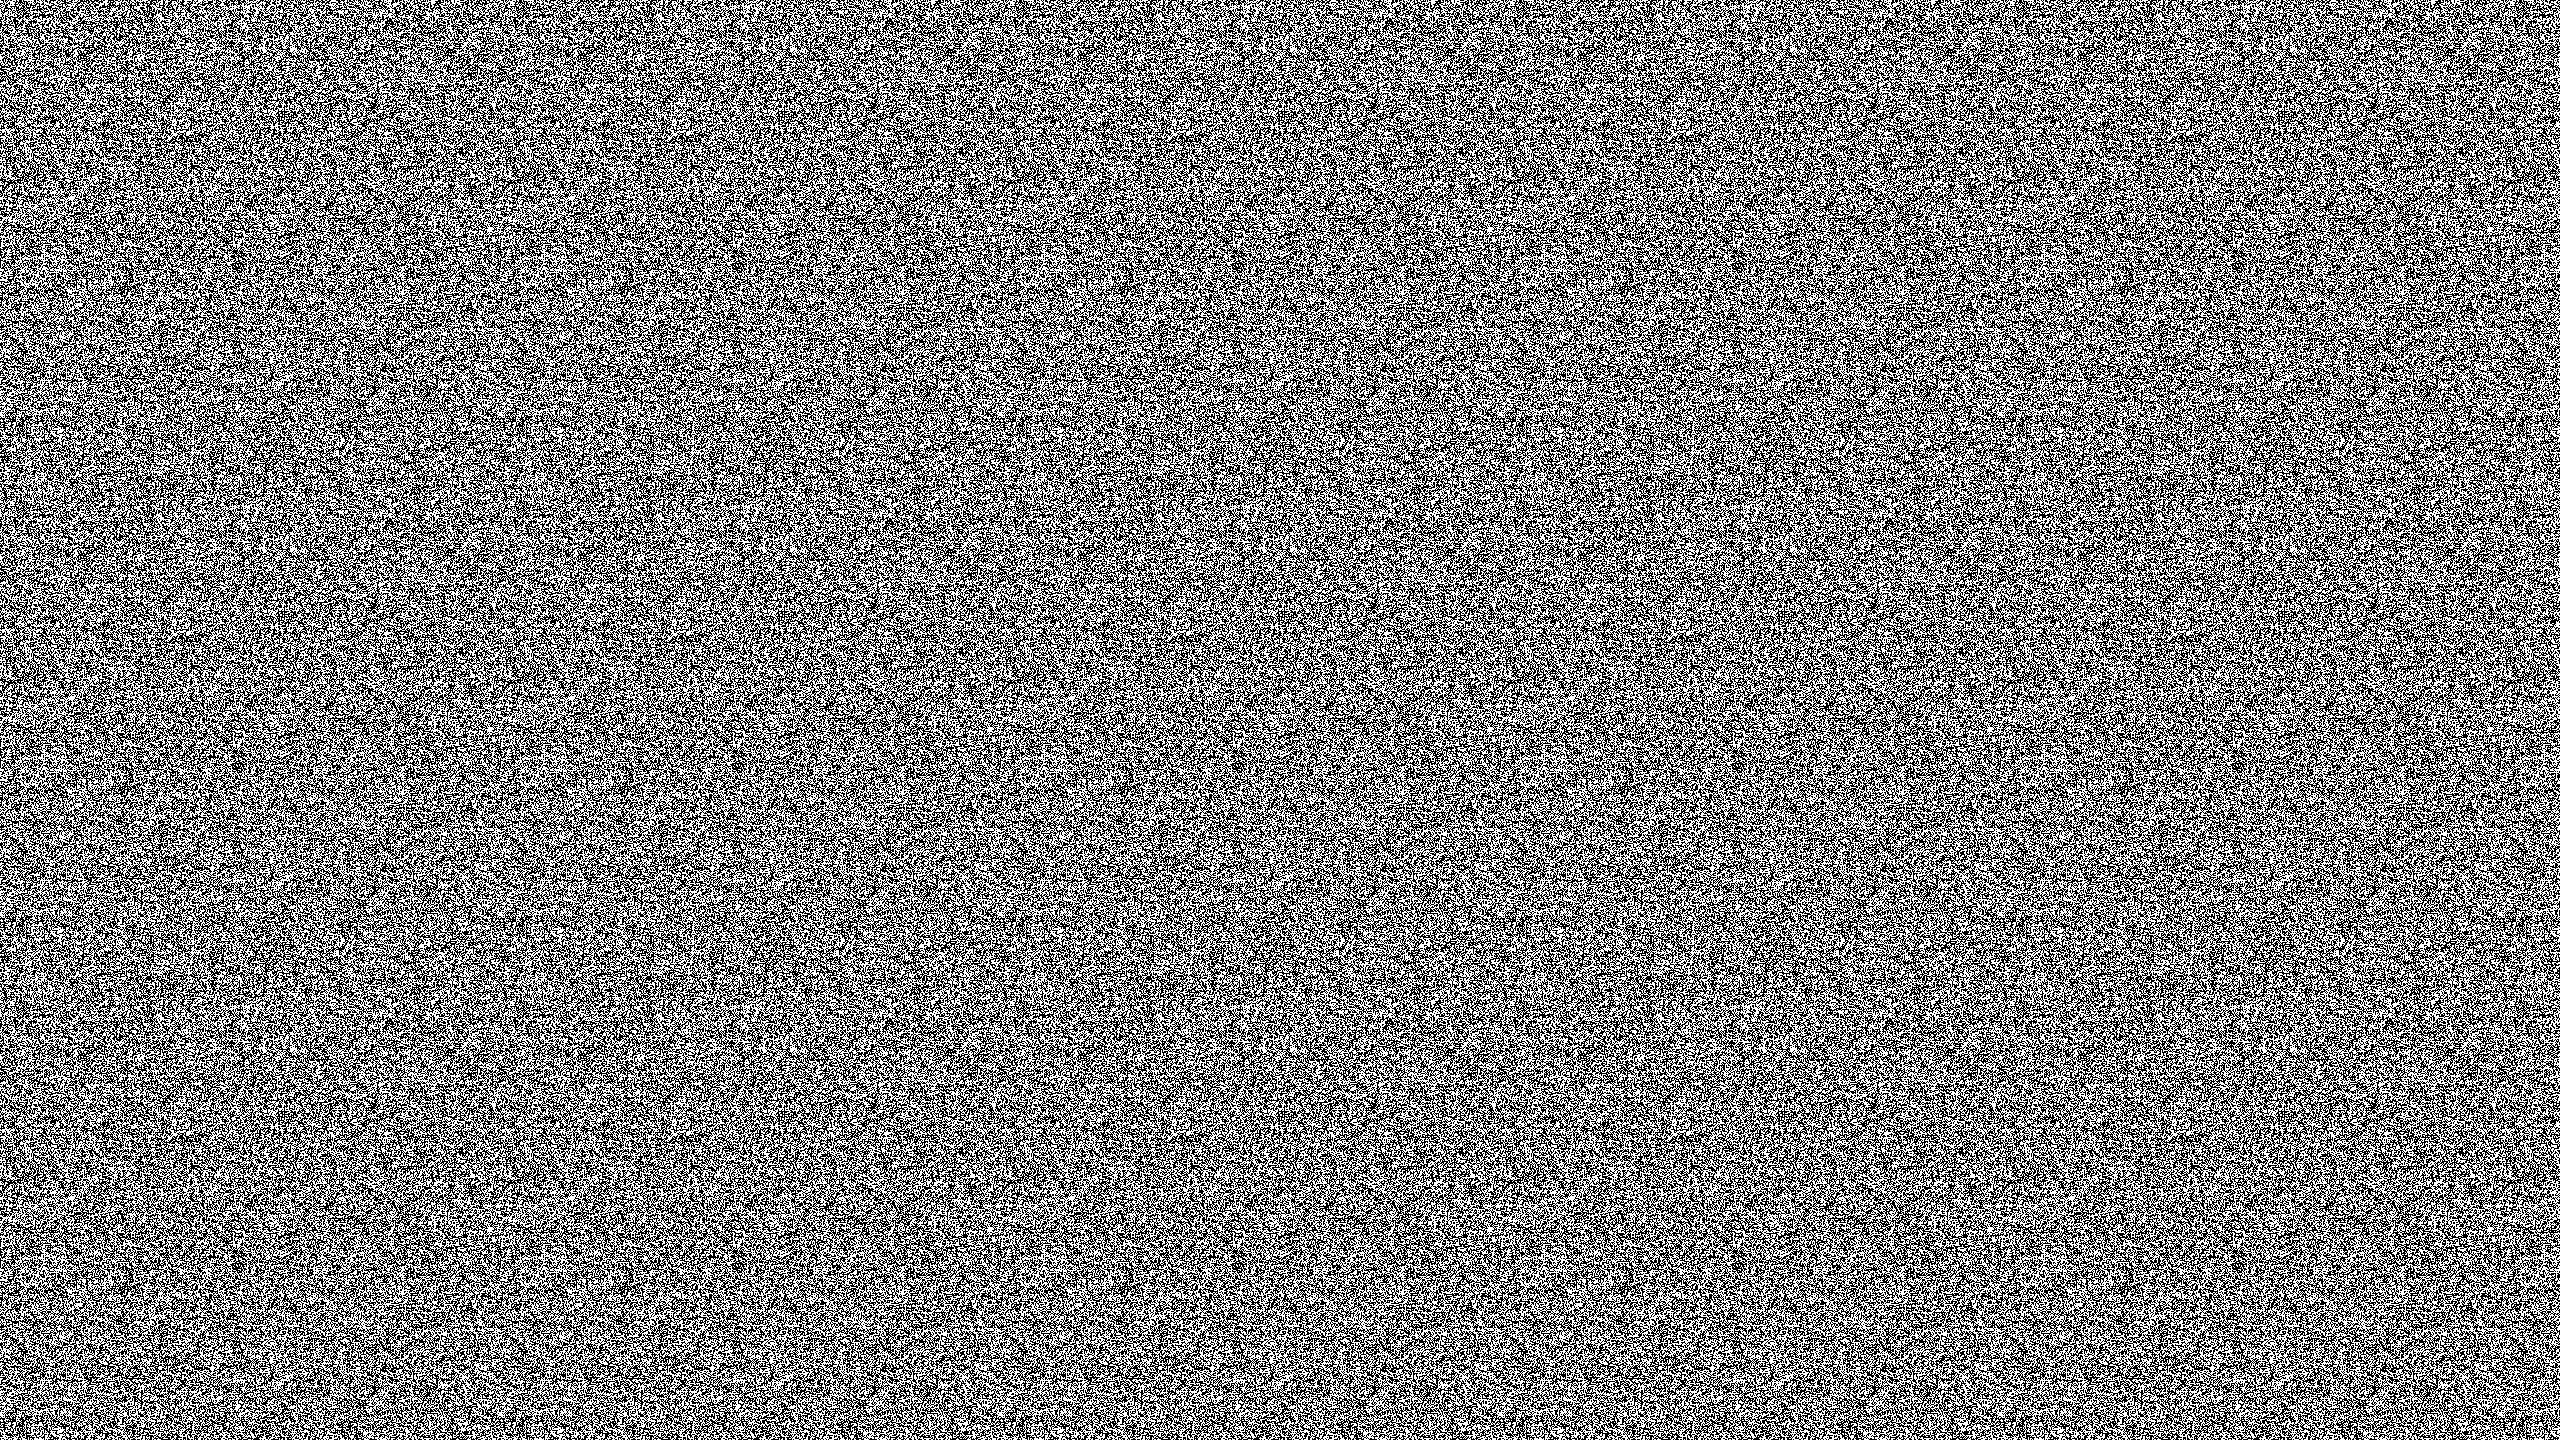 this Static Flash Desktop Wallpaper is easy Just save the wallpaper 2560x1440